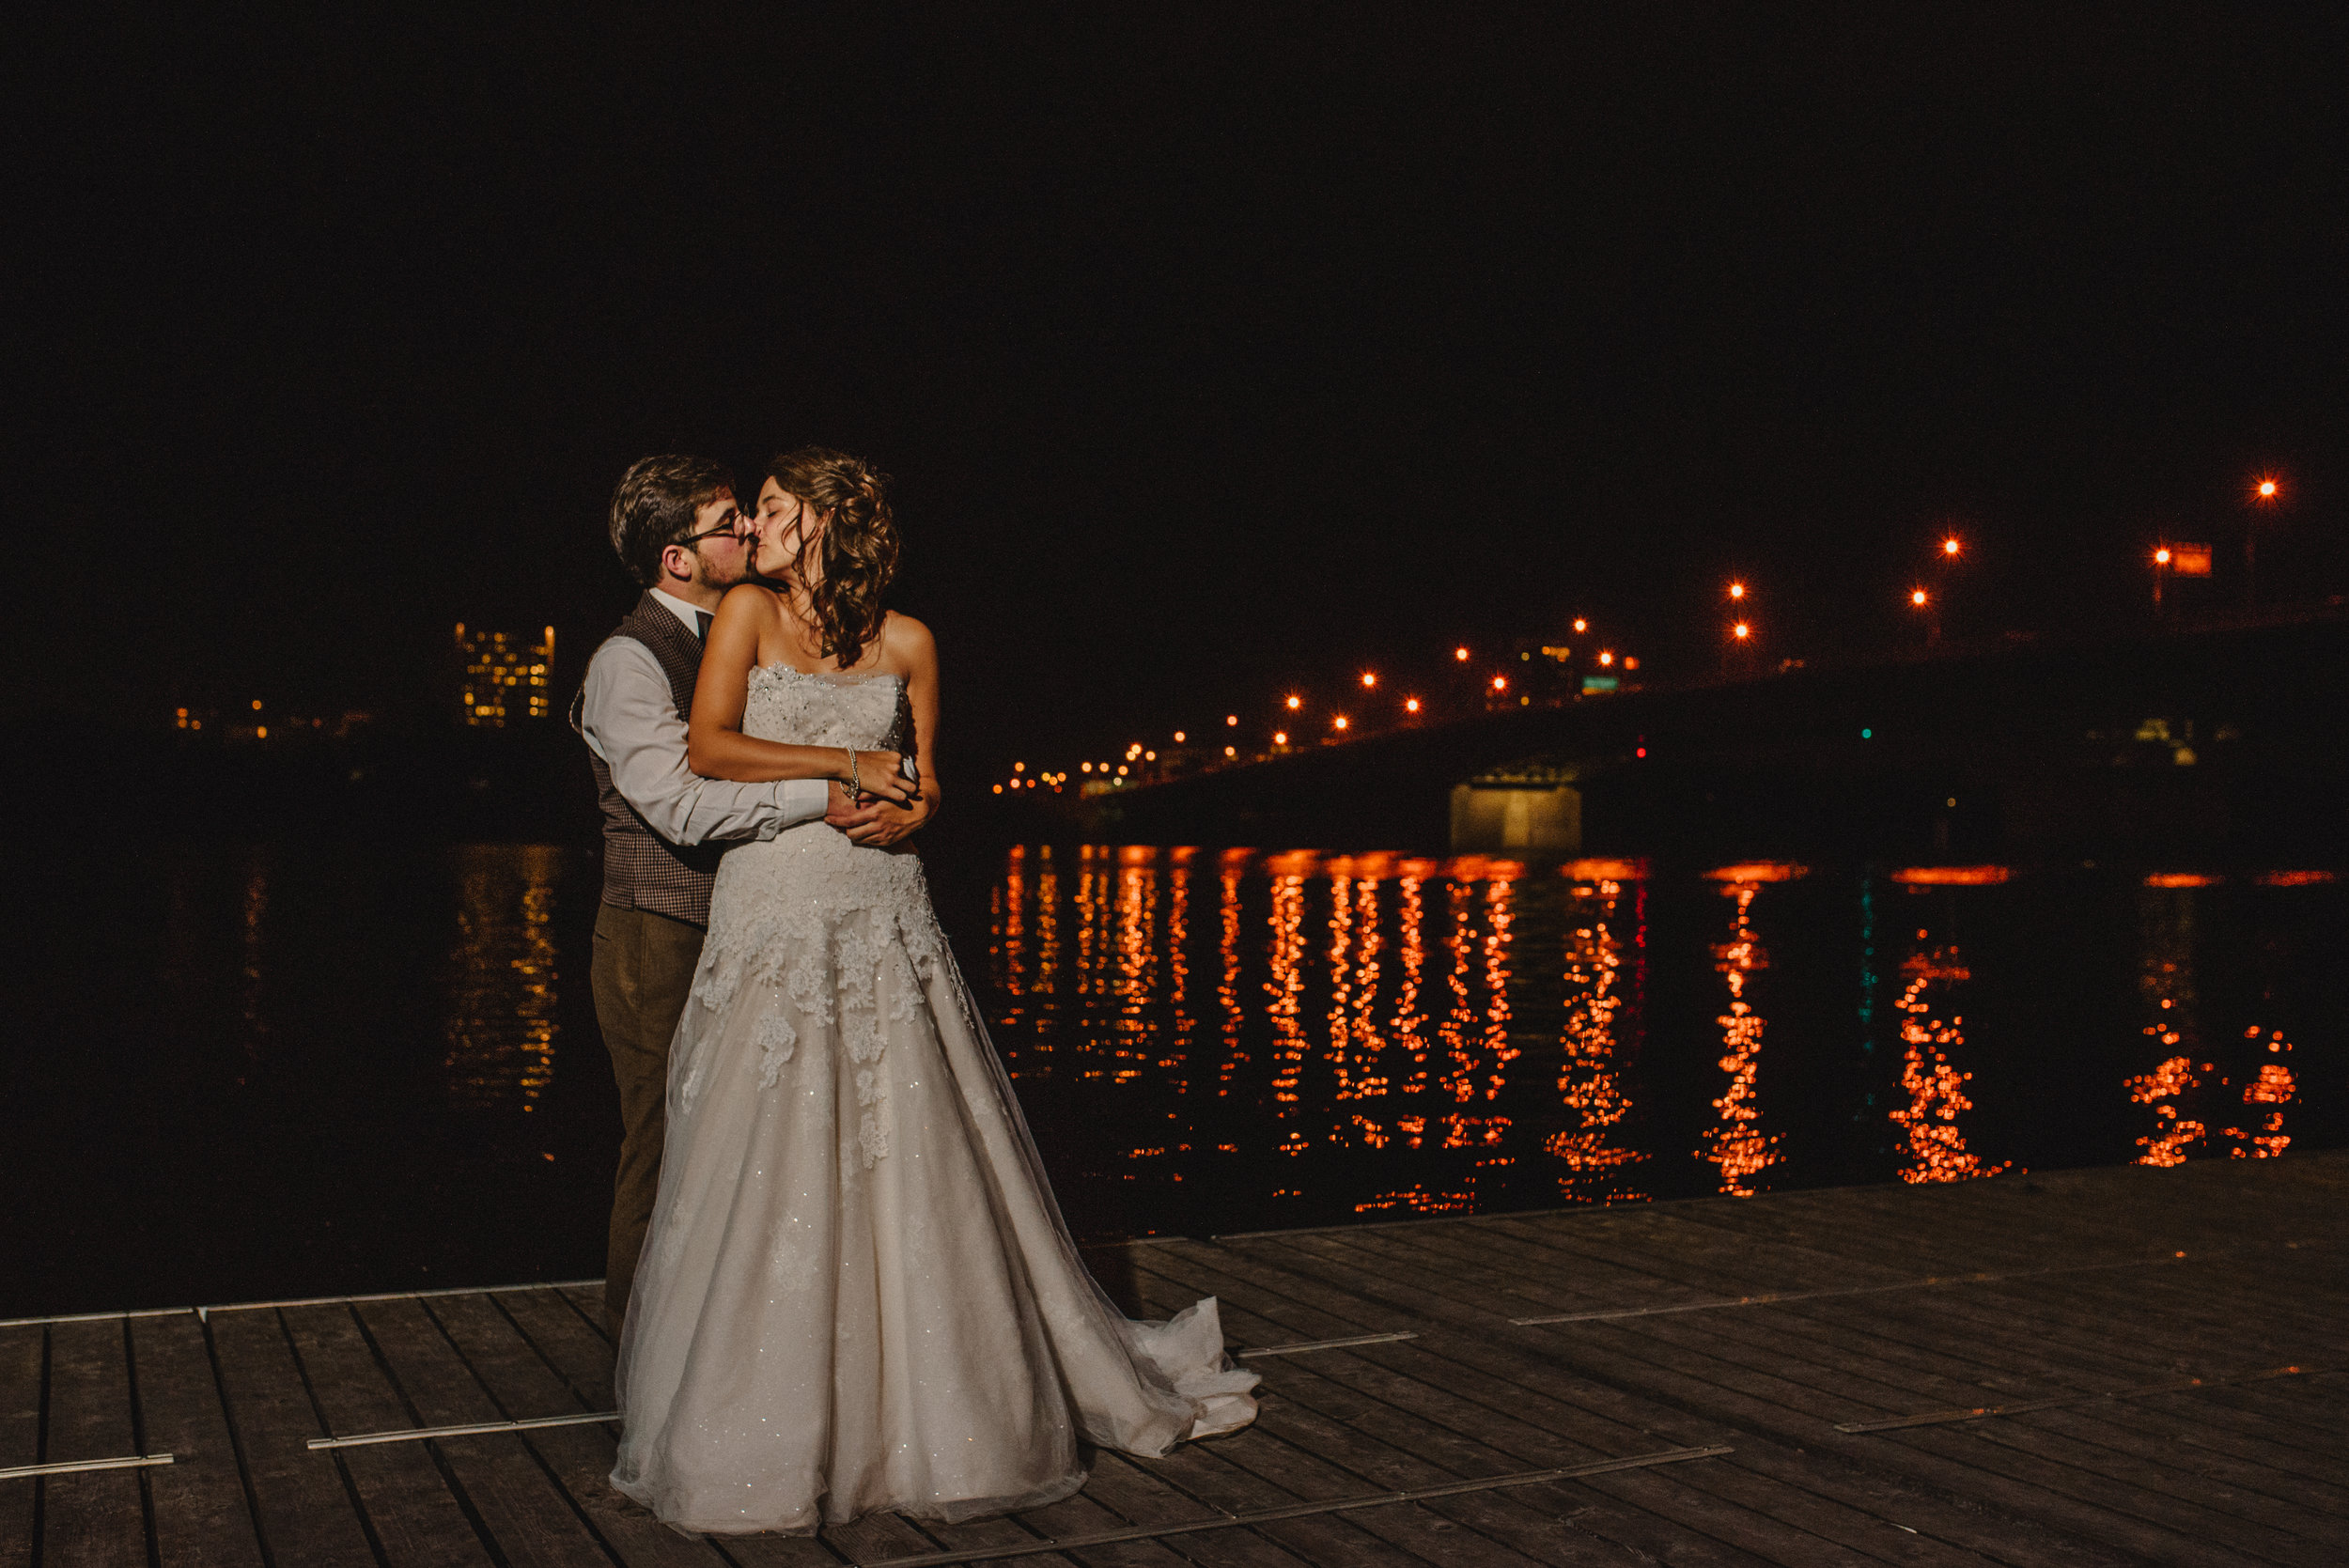 Mocha Tree Studios Ottawa Wedding and Engagement Photographer and Videographer Dark Moody Intimate Authentic Modern Romantic Cinematic Best Candid Ottawa Rowing Club 46